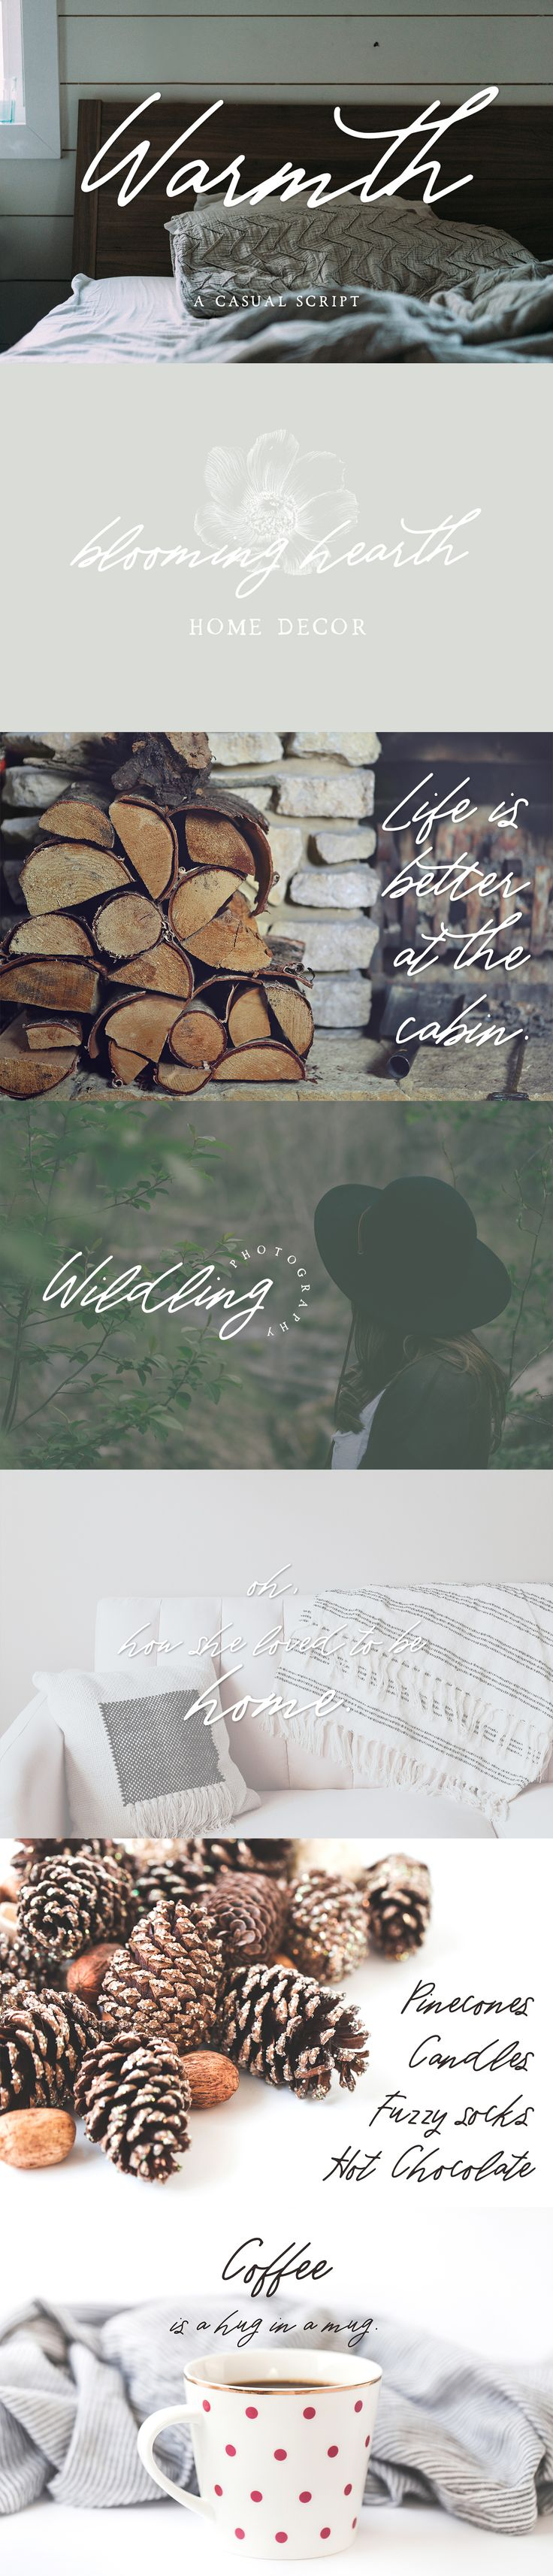 cursive fonts for wedding cards%0A Handwritten font  calligraphy font  modern calligraphy and hand lettering   fonts for branding